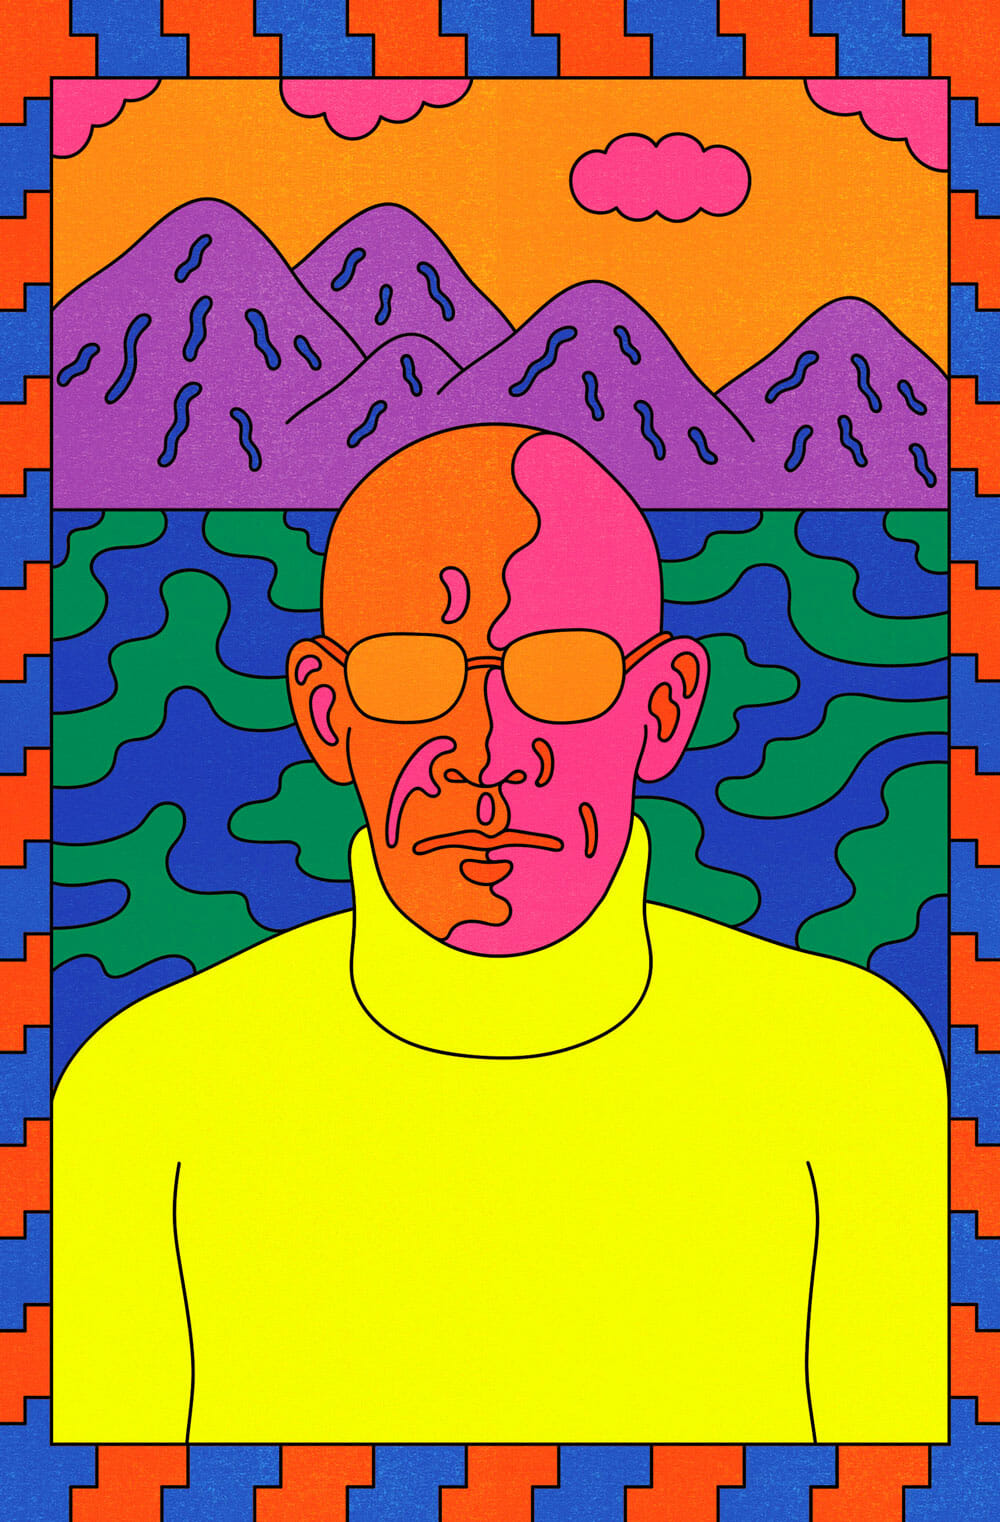 A psychedelic, acid-inspired rendering of Michel Foucault in front of a mountain landscape.